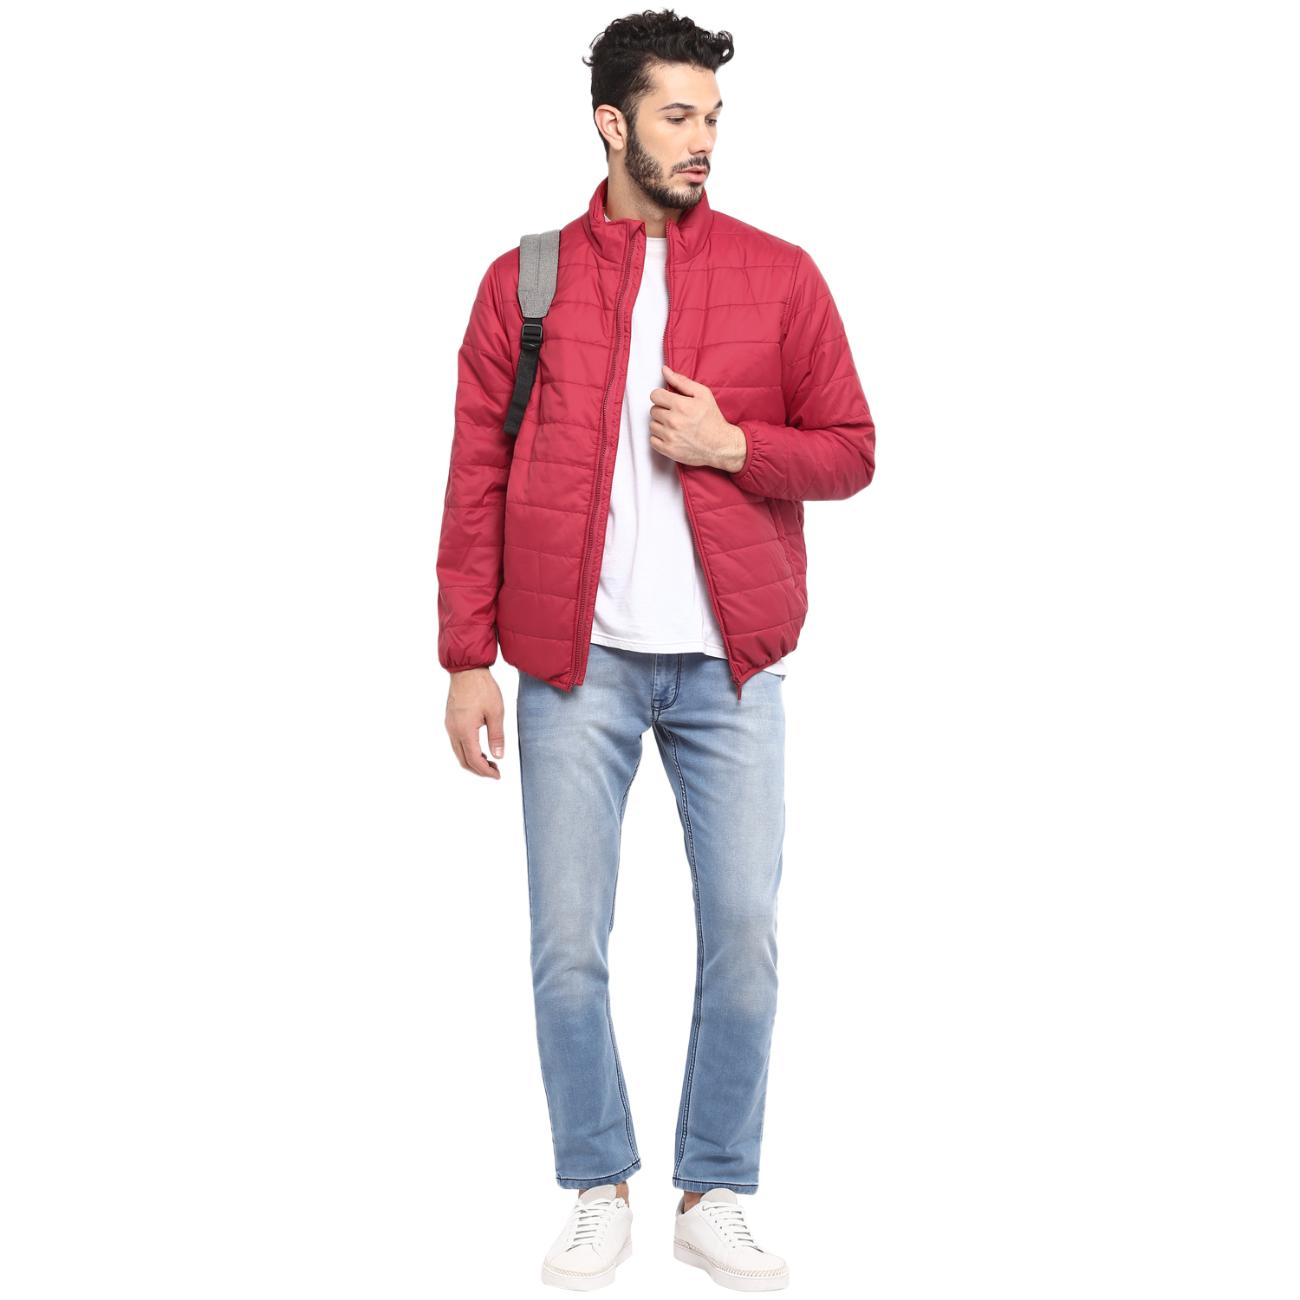 Men's Red Jacket Online at Red Chief